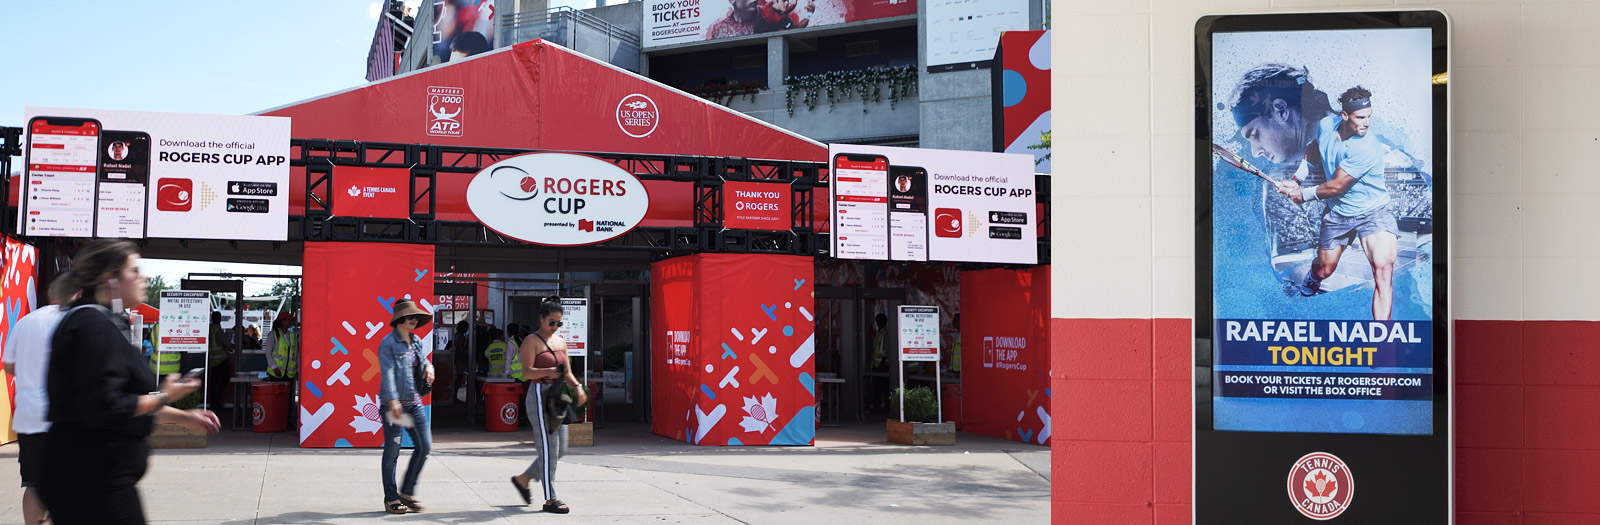 Rogers Cup Site Video Screens